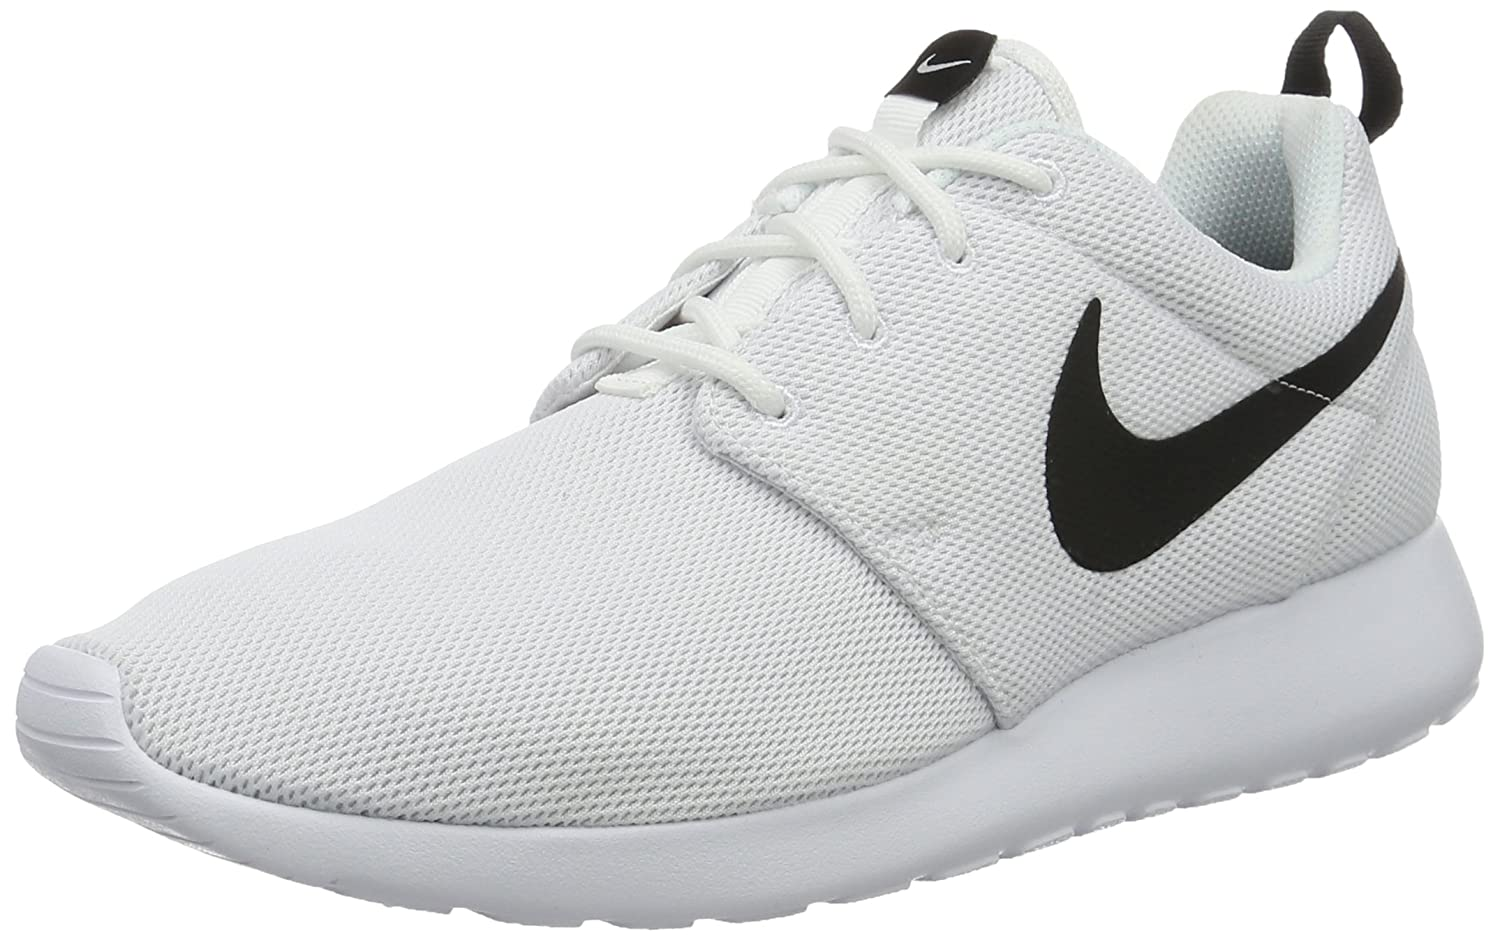 NIKE Women's Roshe One Running Shoe B002UJY1IG 7.5 B(M) US|White/White/Black